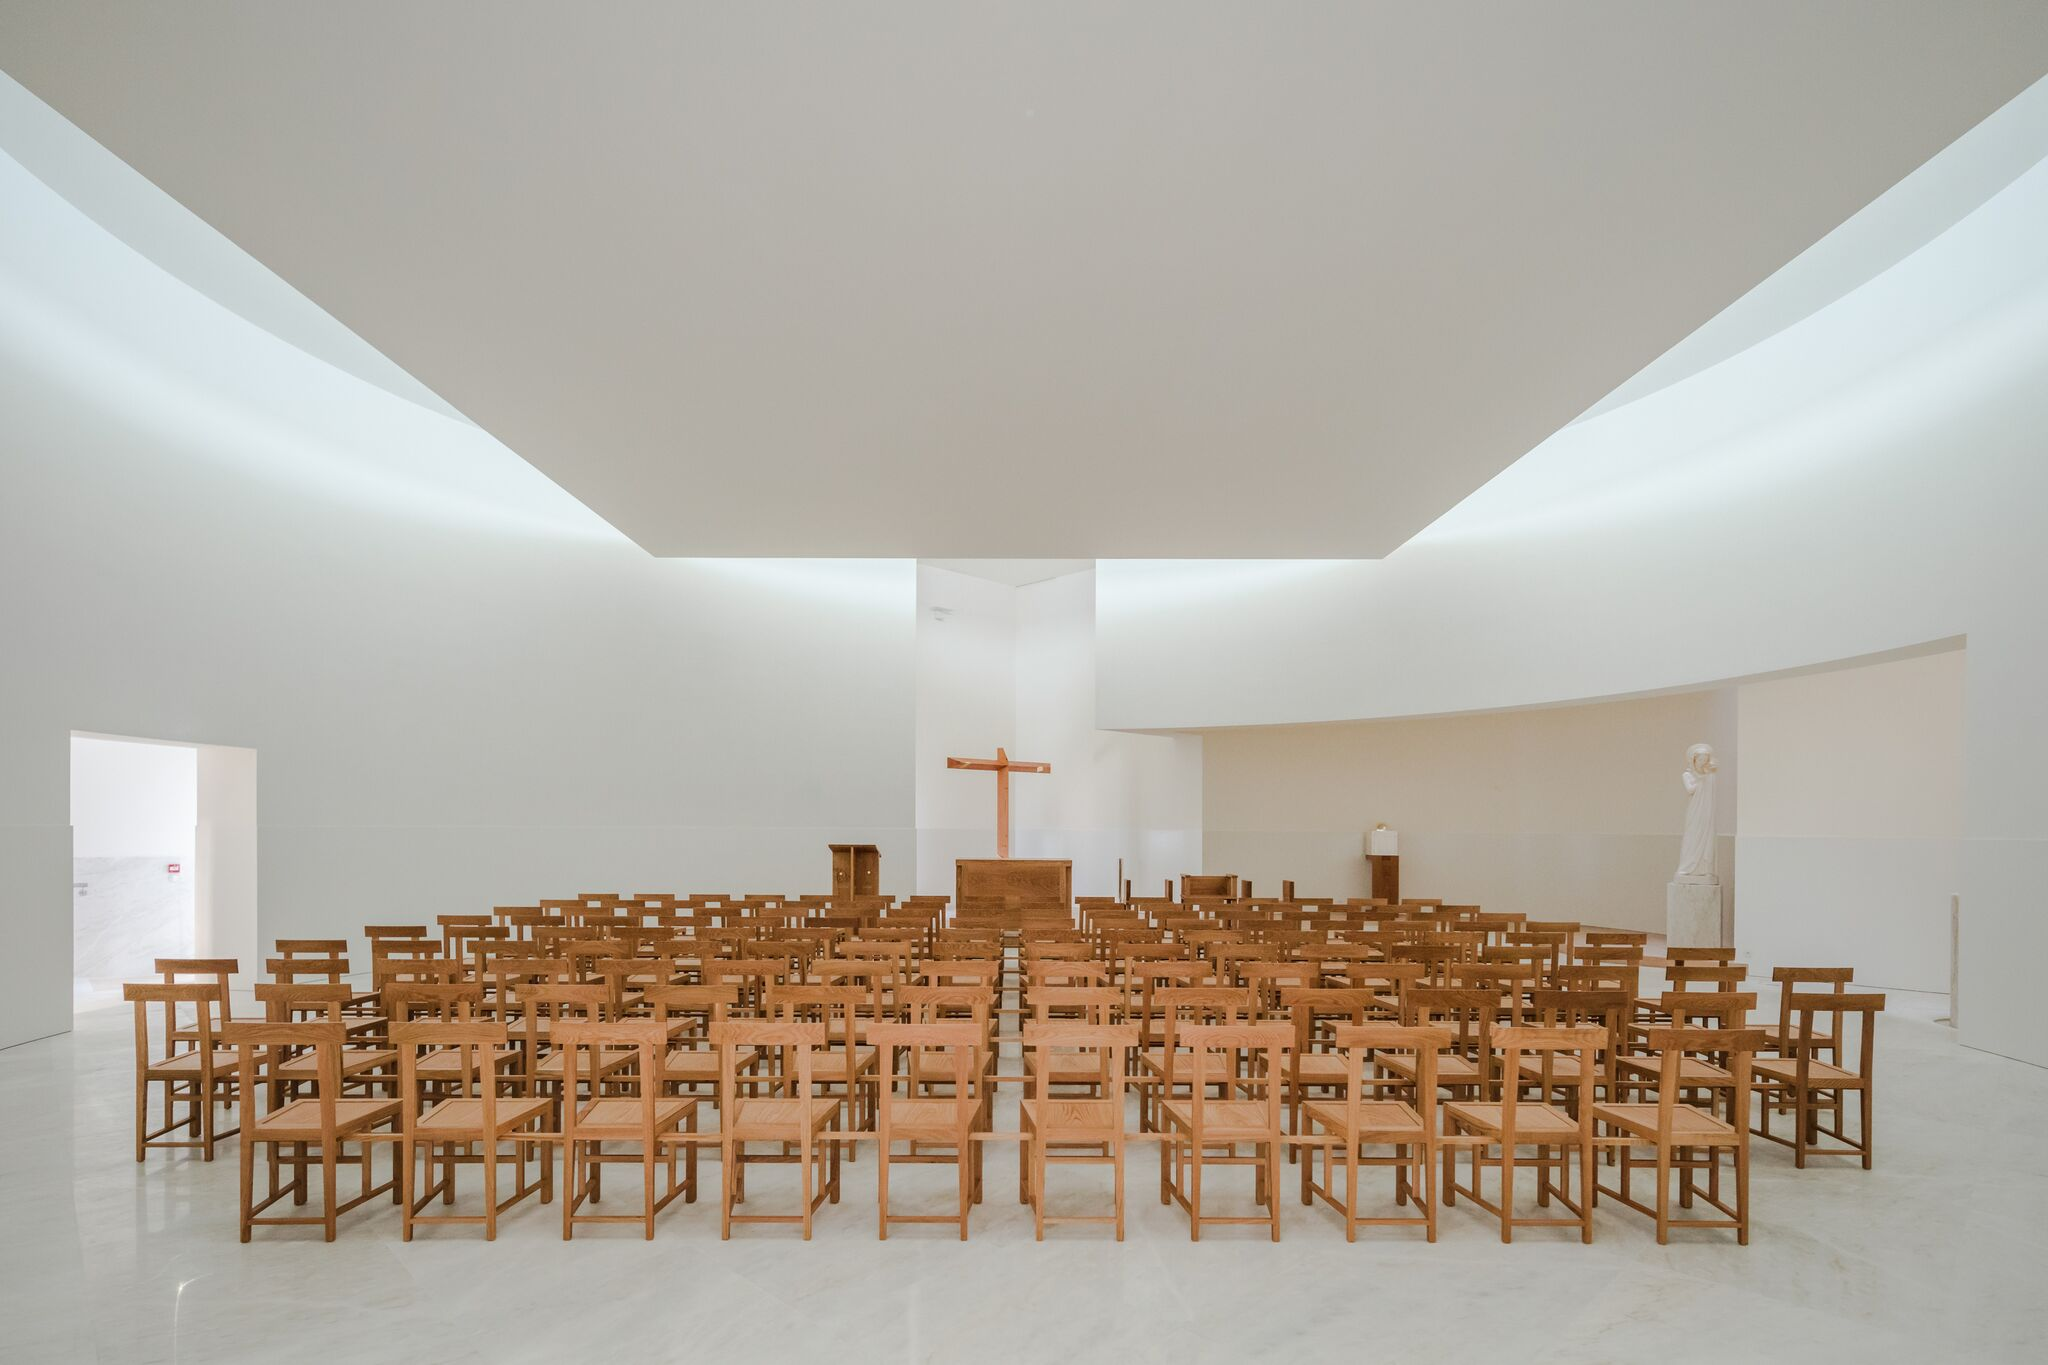 6_Alvaro Siza Vieira_New Church of Saint-Jacques de la Lande_Inspirationist